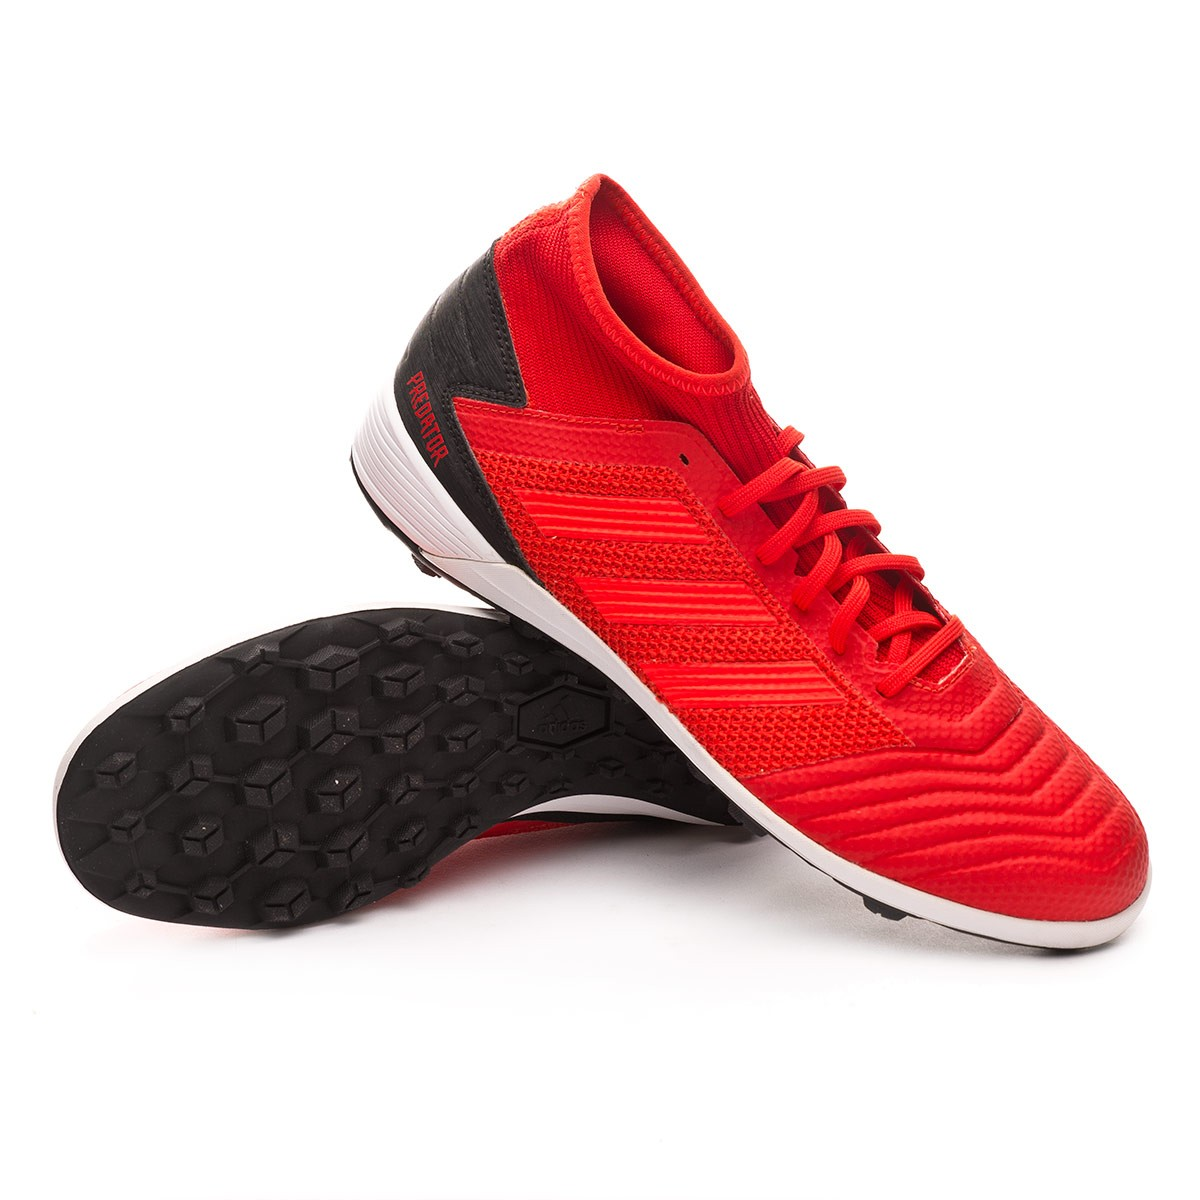 98f3d579 Football Boot adidas Predator Tango 19.3 Turf Active red-Solar red-Core  black - Football store Fútbol Emotion